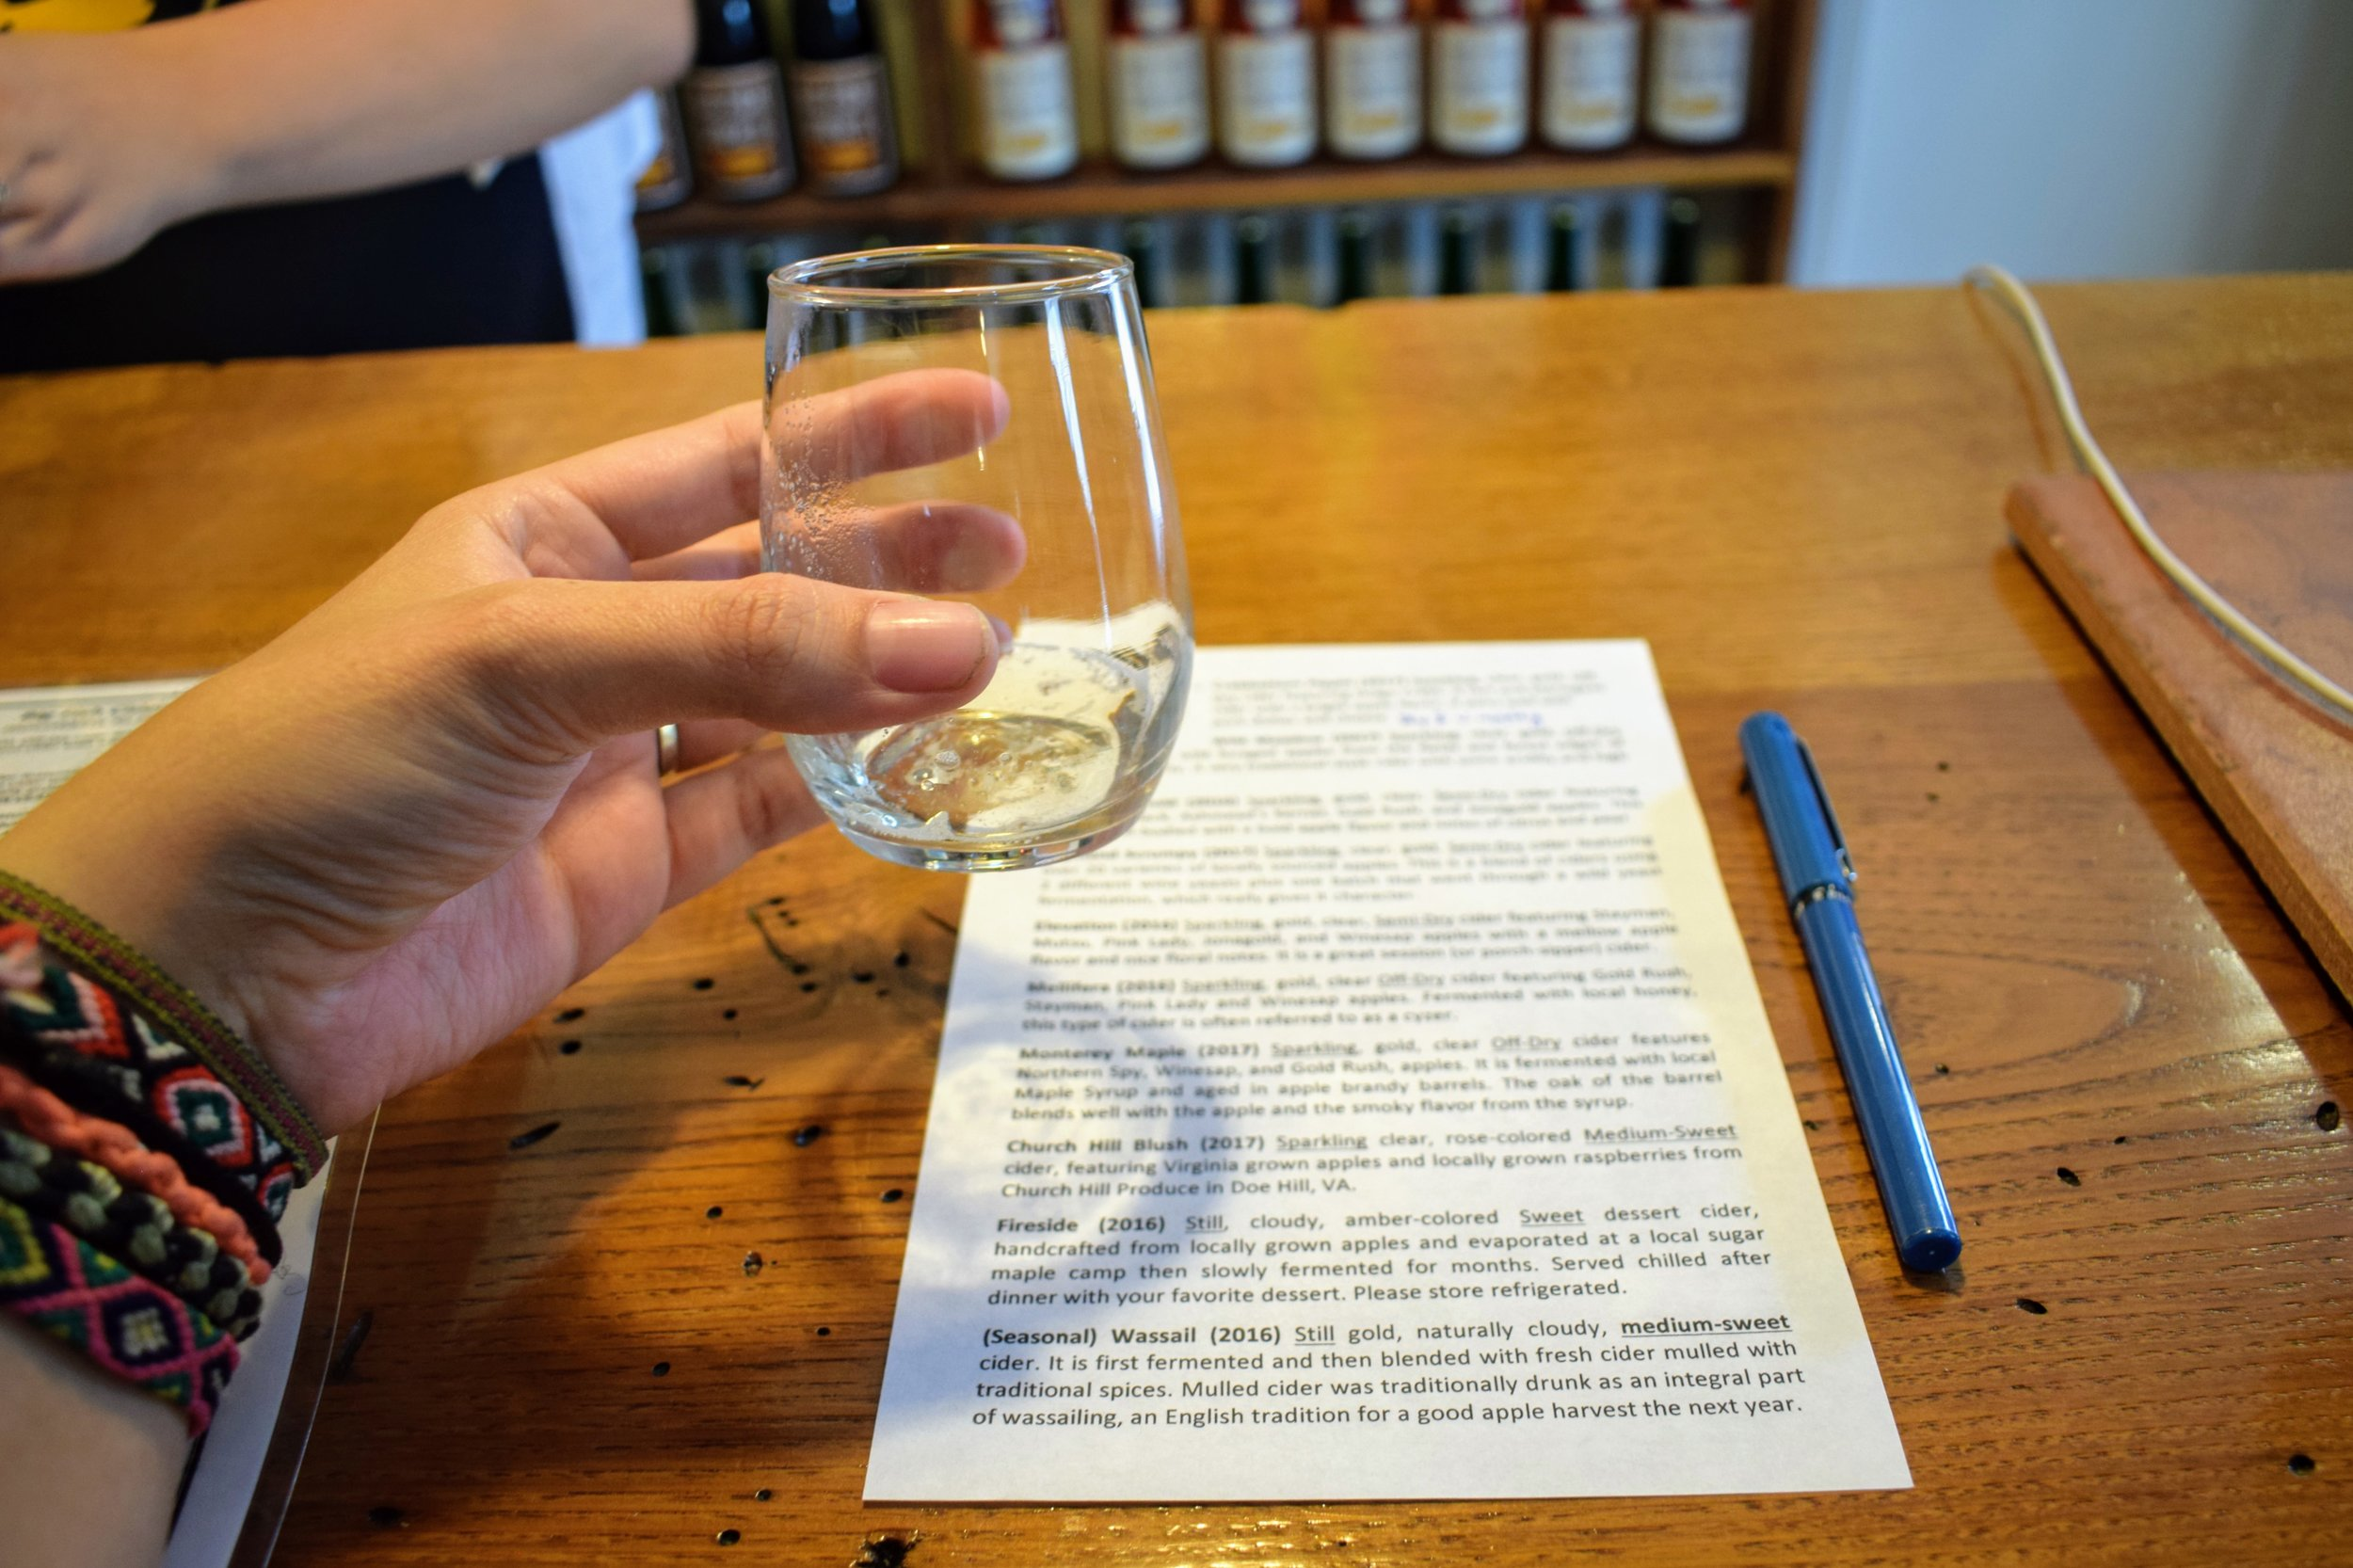 Cider tasting at Big Fish, Monterey's micro-cidery.